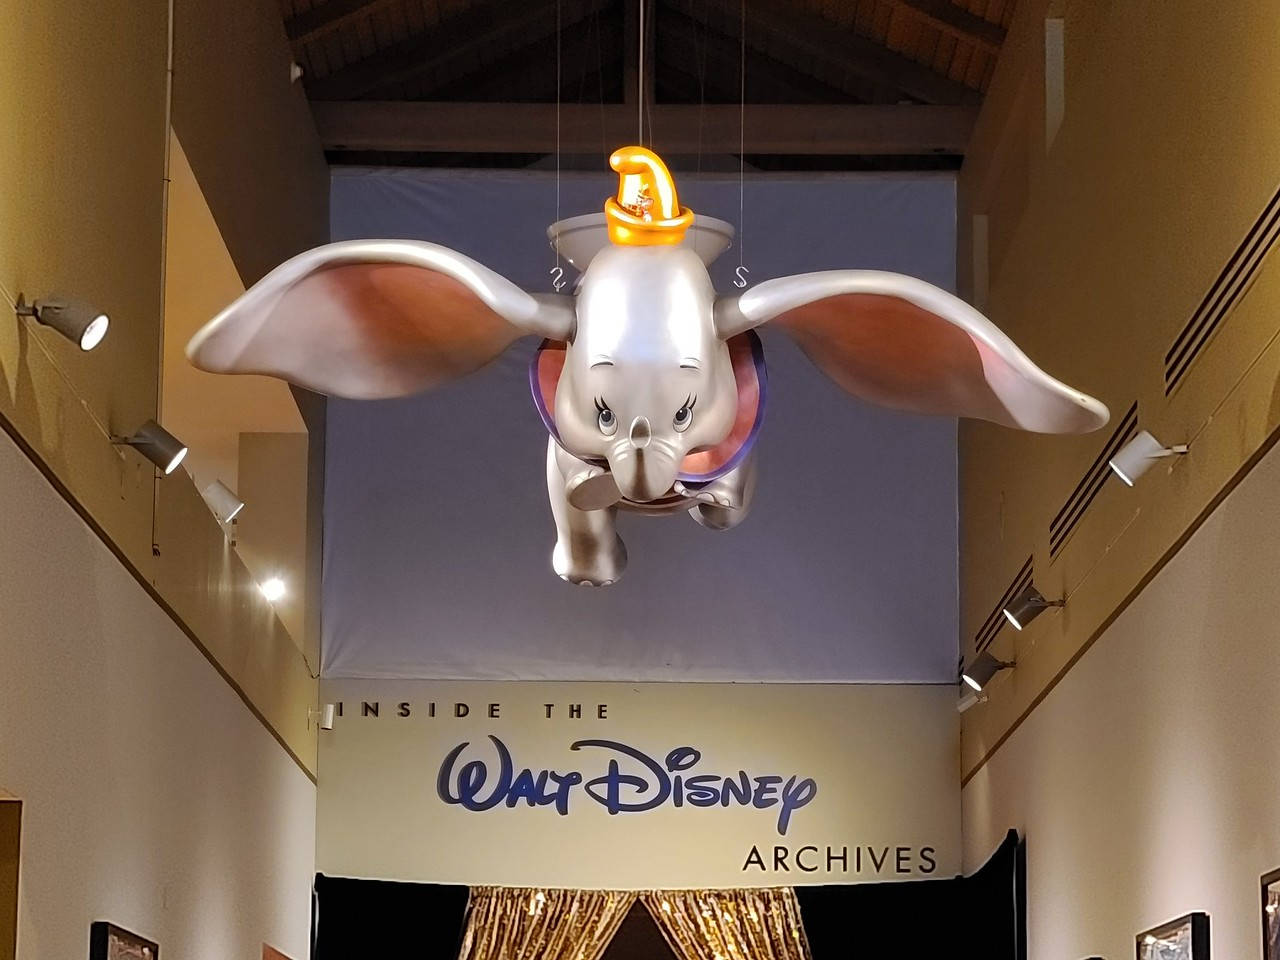 STEP INSIDE: Hundreds of pieces of memorabilia enchant 'Inside the Walt Disney Archives' exhibit at Bowers Museum